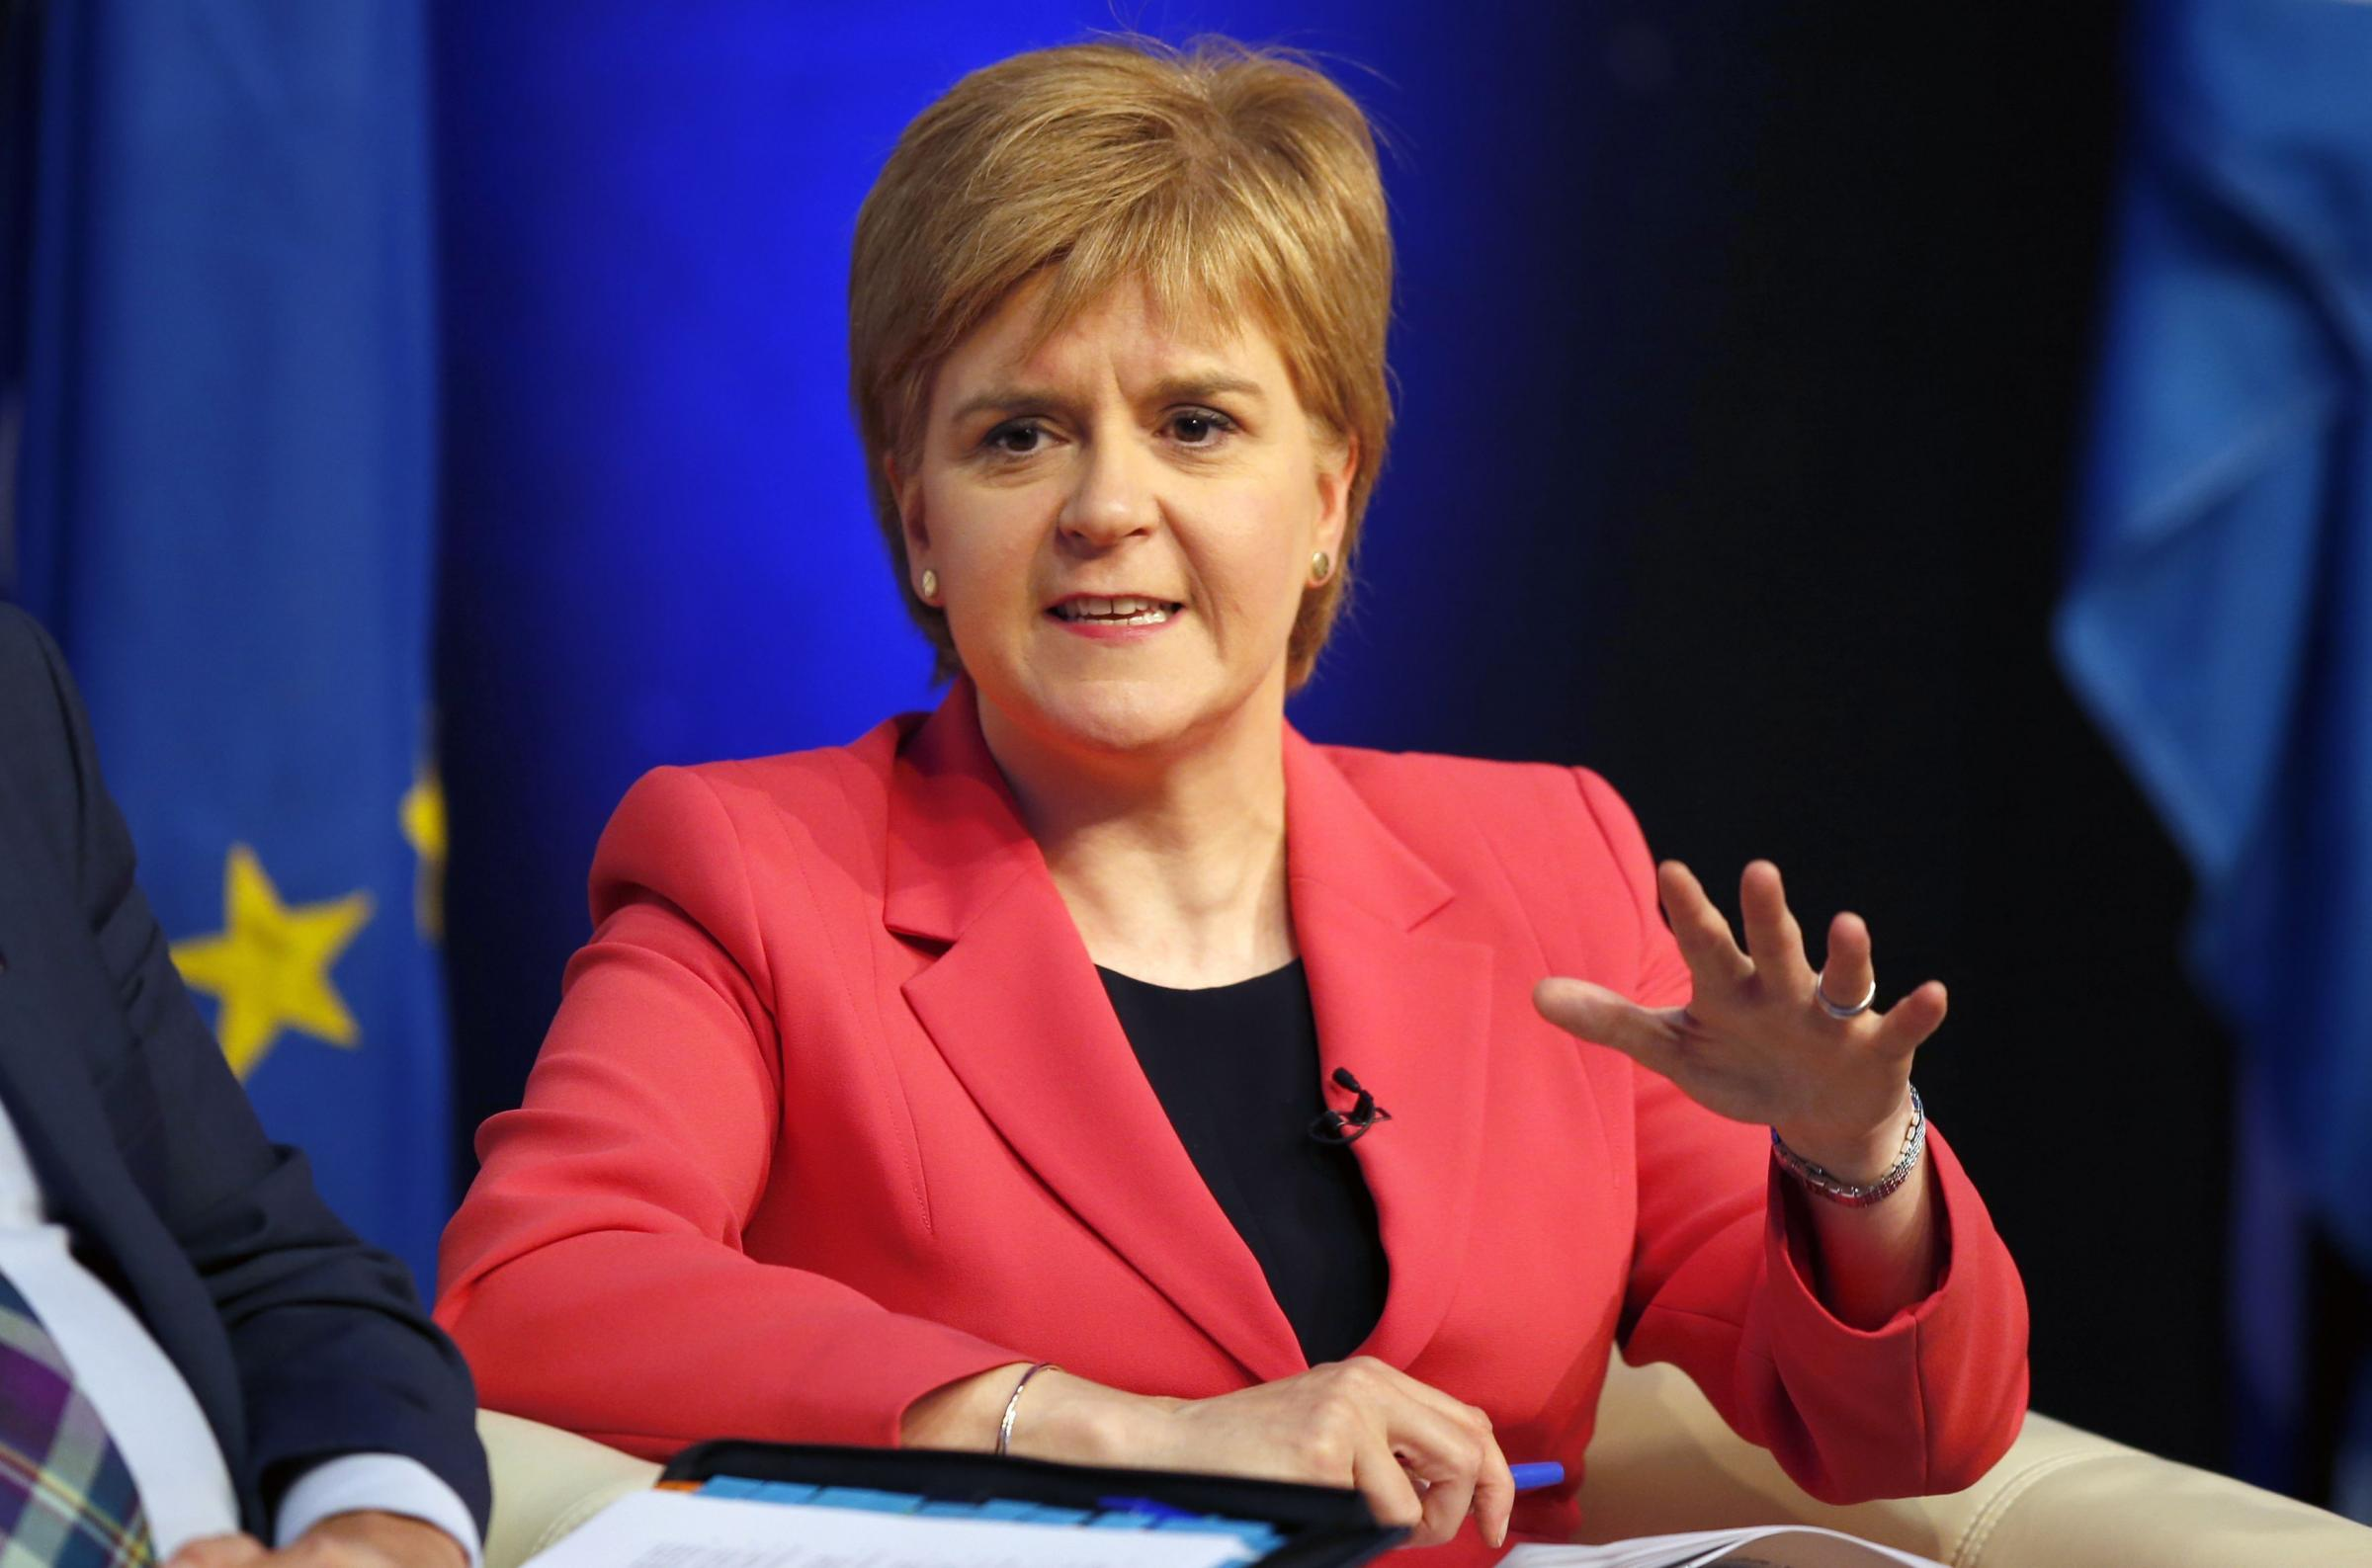 First Minister Nicola Sturgeon issued a strong response to the vote